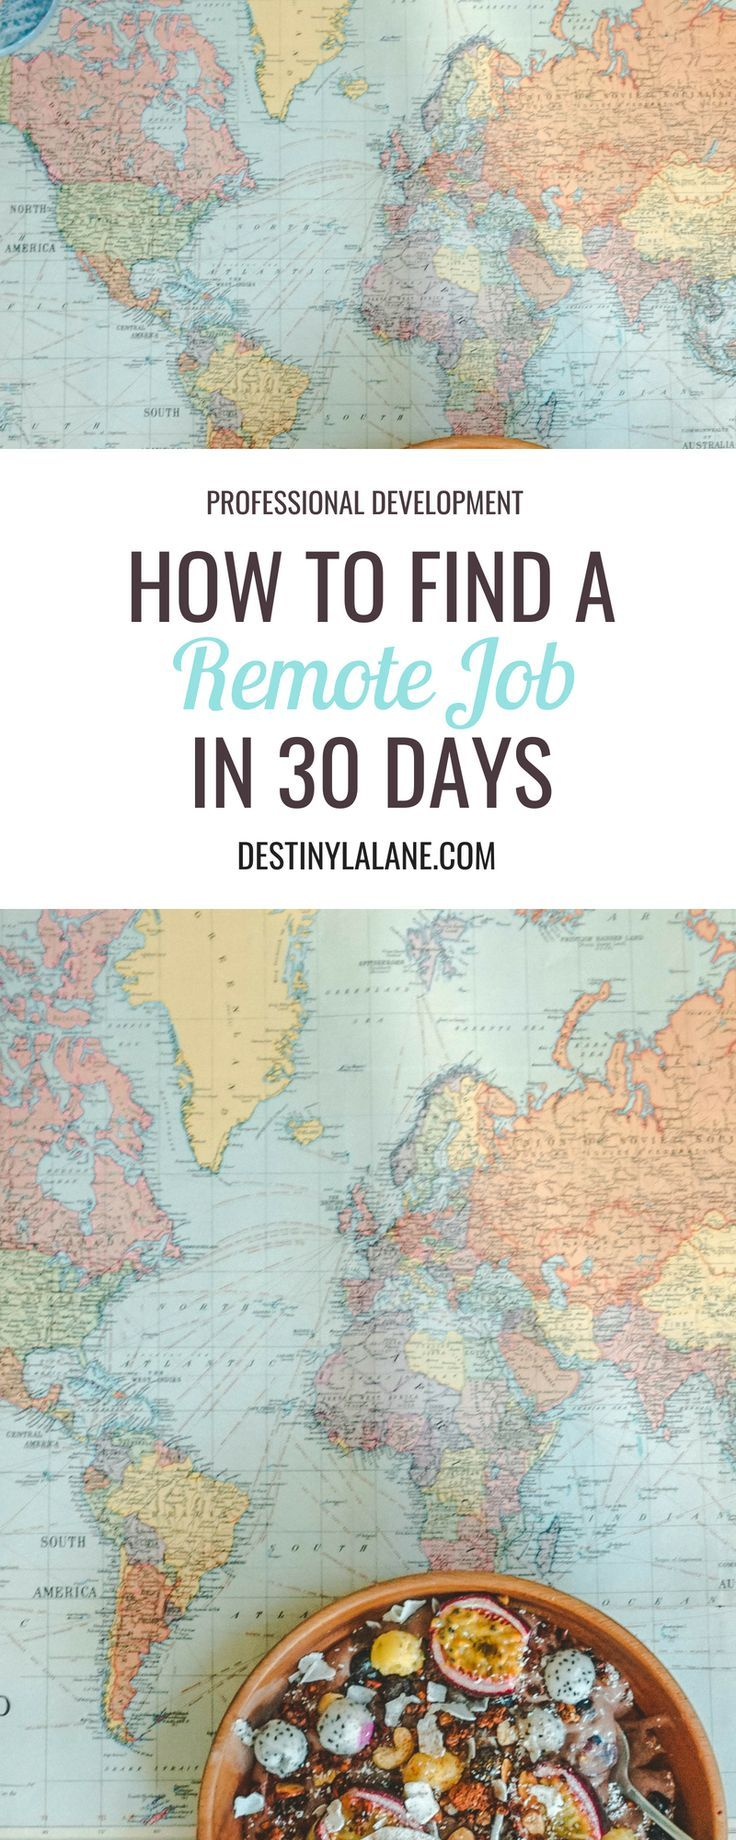 How to find a remote job in 30 days – Carla Thomas